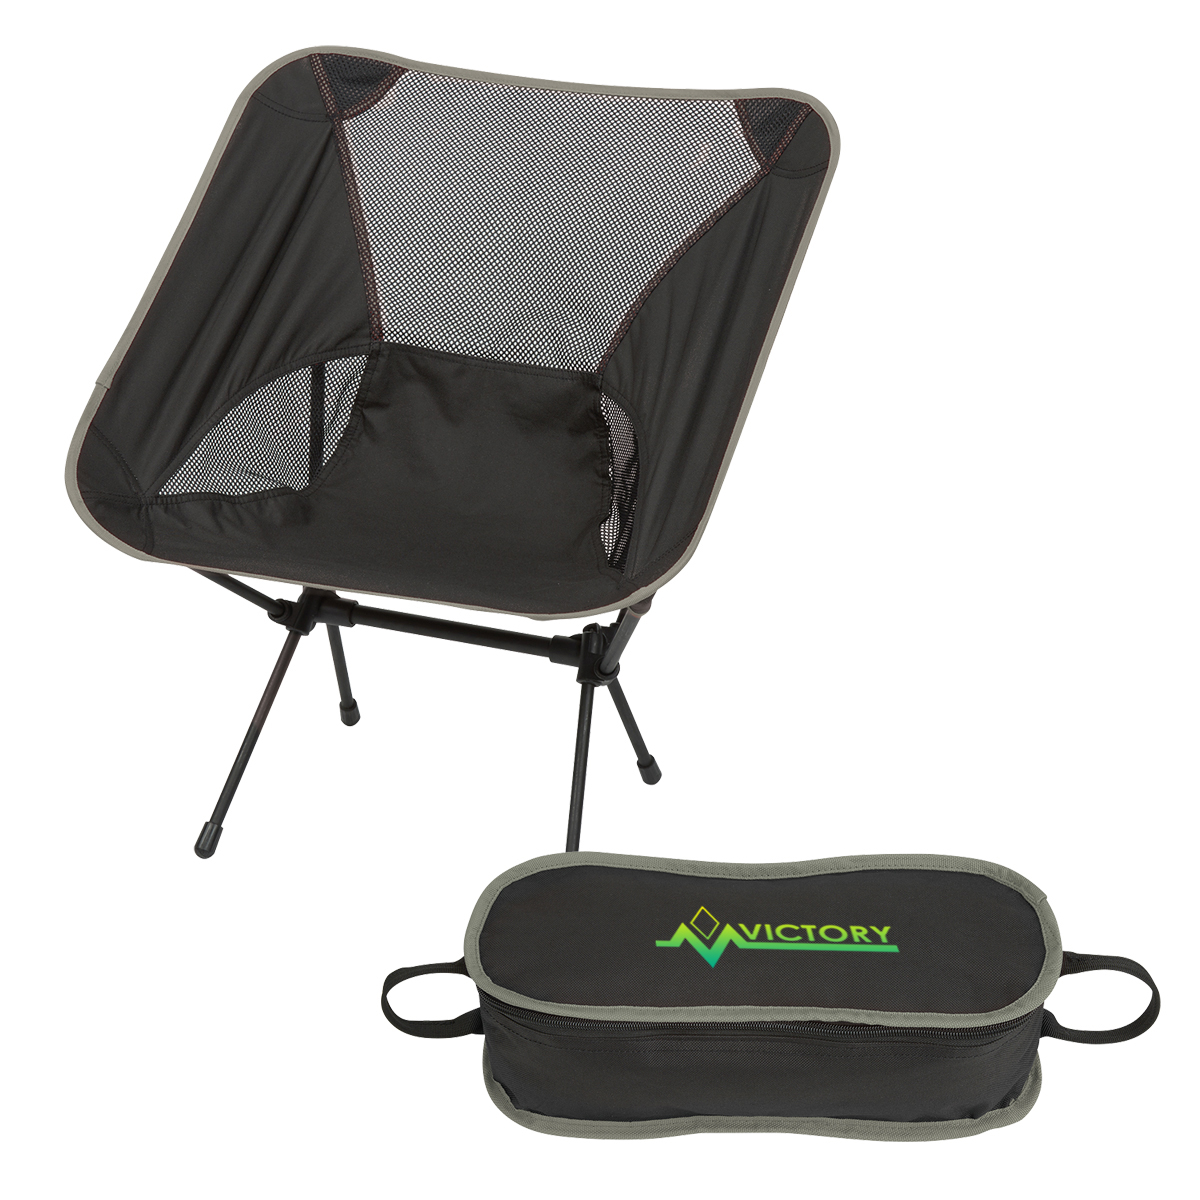 Victory Grey Folding Chair with Travel Bag